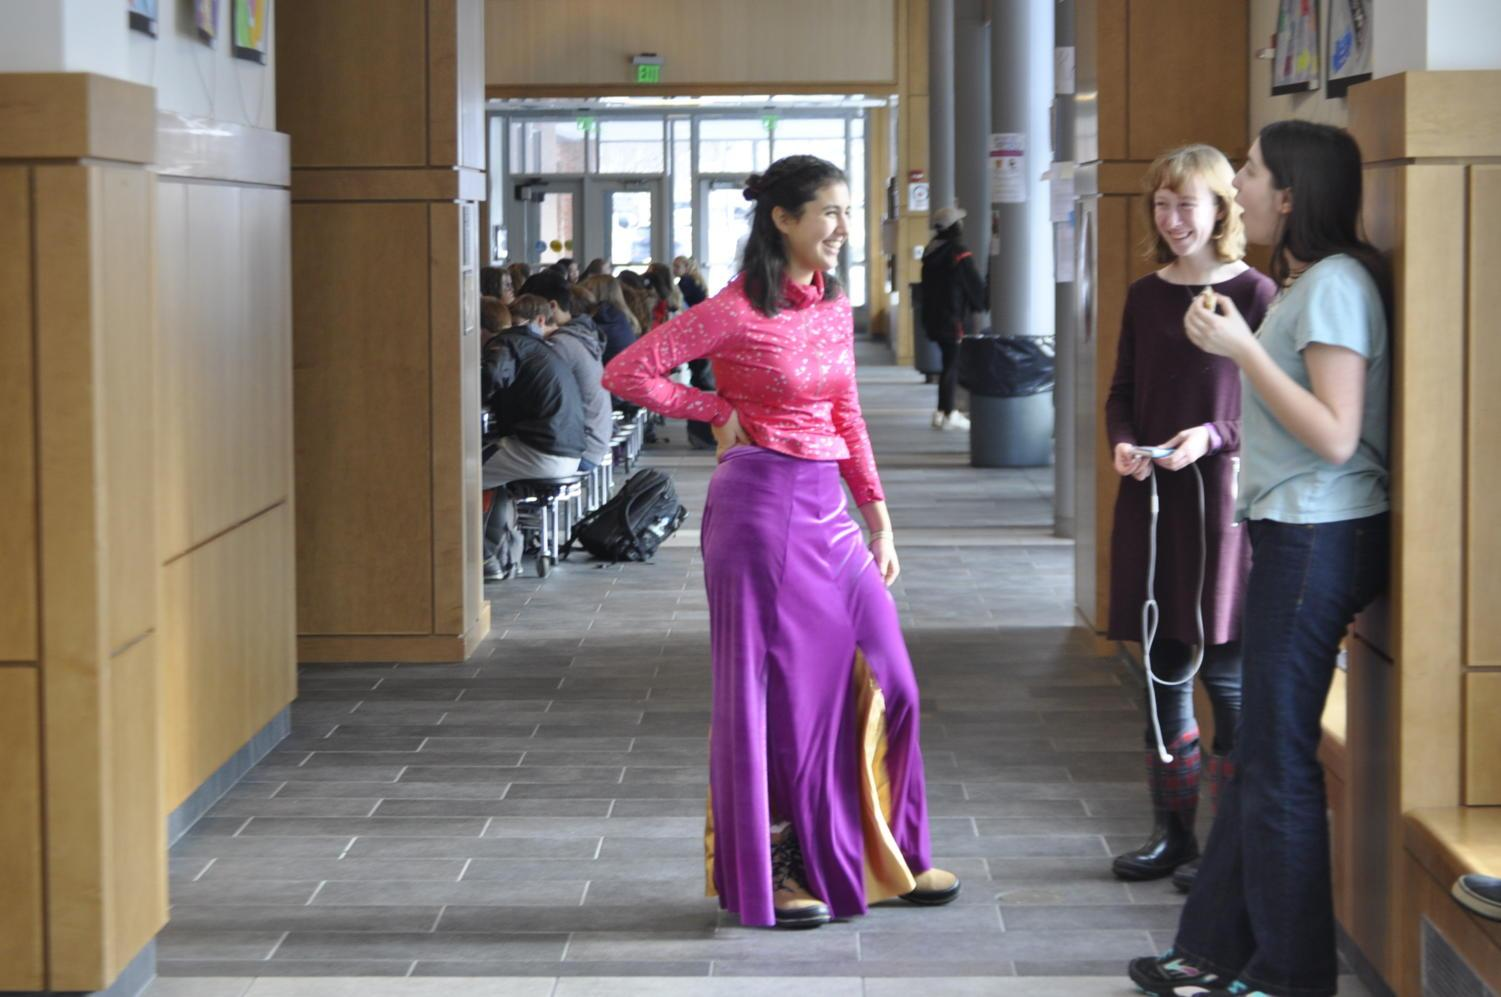 Pictured above is junior Teresa Hank Gomez, alongside her stylist Renée Case, trying on part of her newly made prom dress.